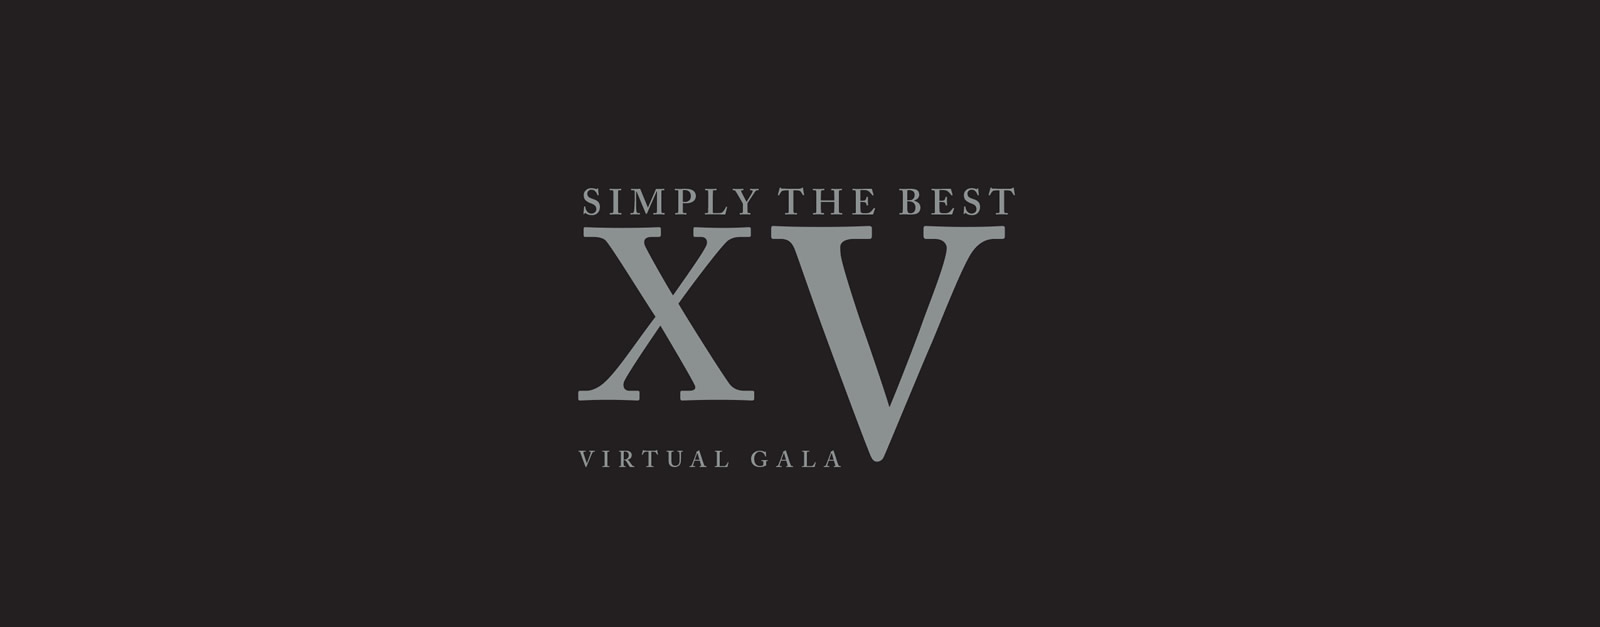 Simply the Best 2020 XV Dinner and Gala